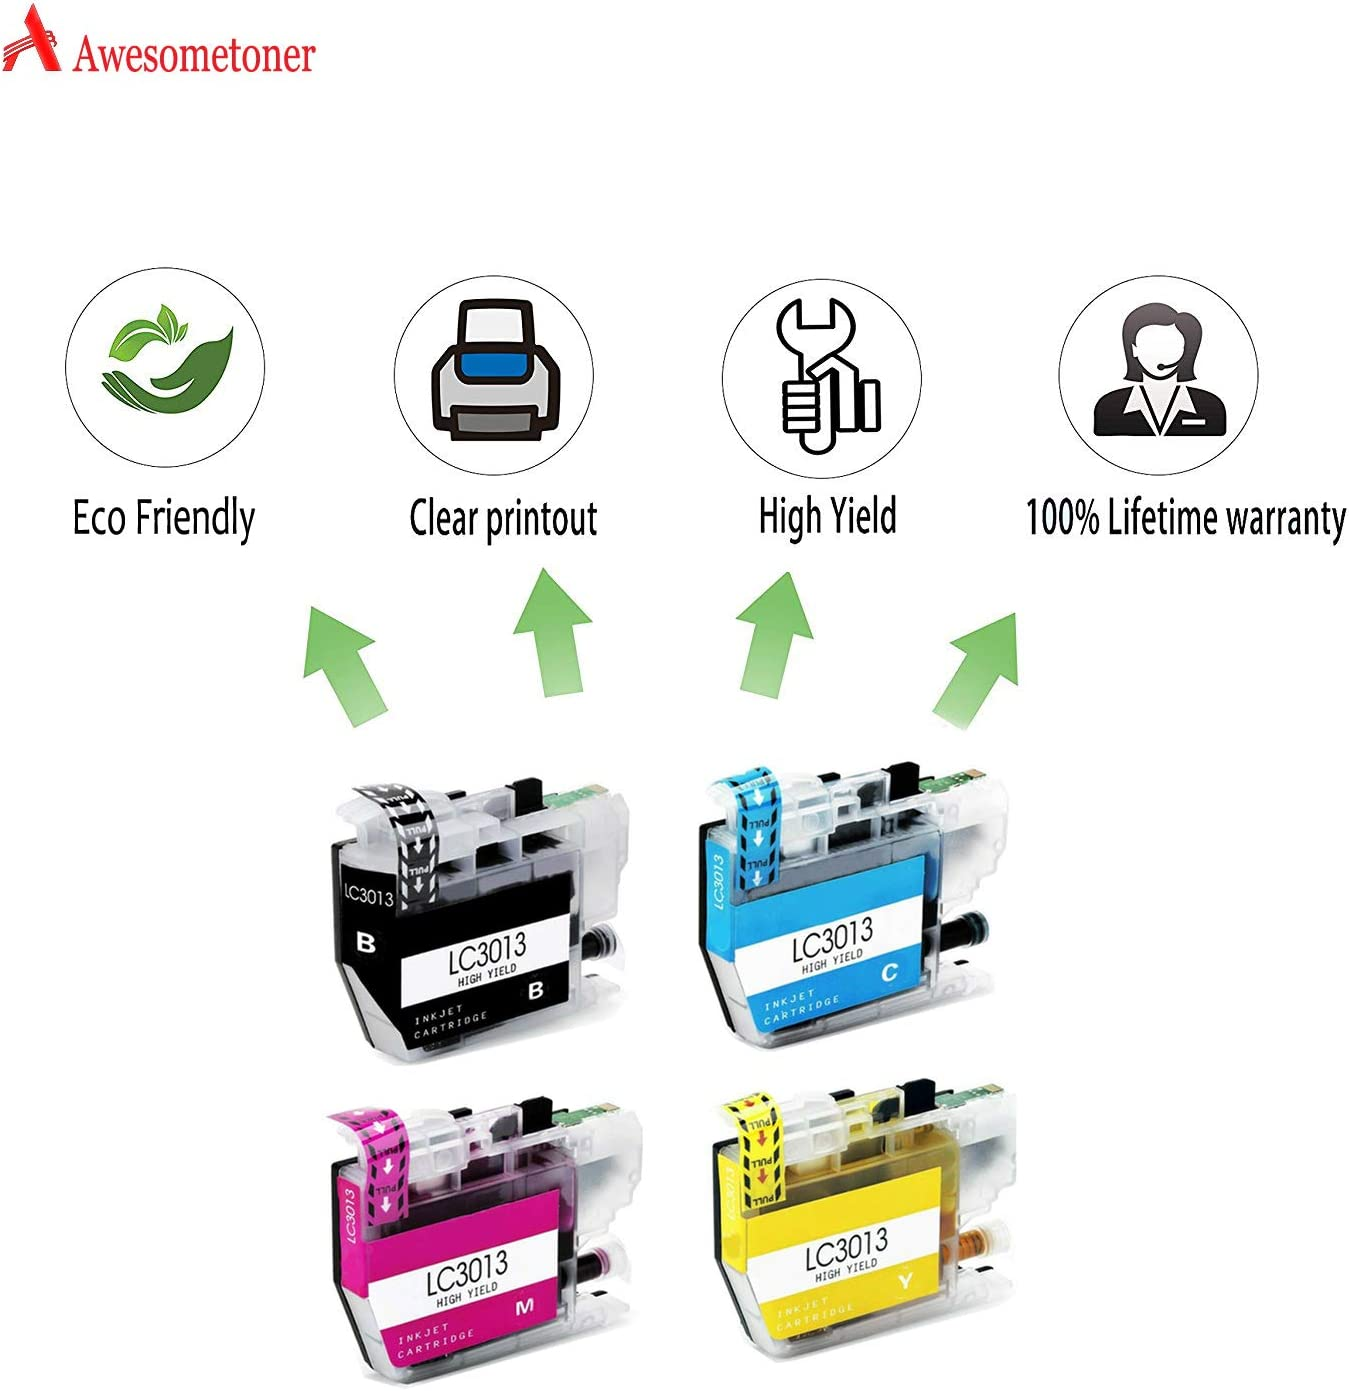 Black, Cyan, Magenta, Yellow, 4-Pack MFC-J497DW MFC-J491DW MFC-J895DW Awesometoner Compatible Ink Cartridge Replacement for Brother LC3013 use with MFC-J690DW